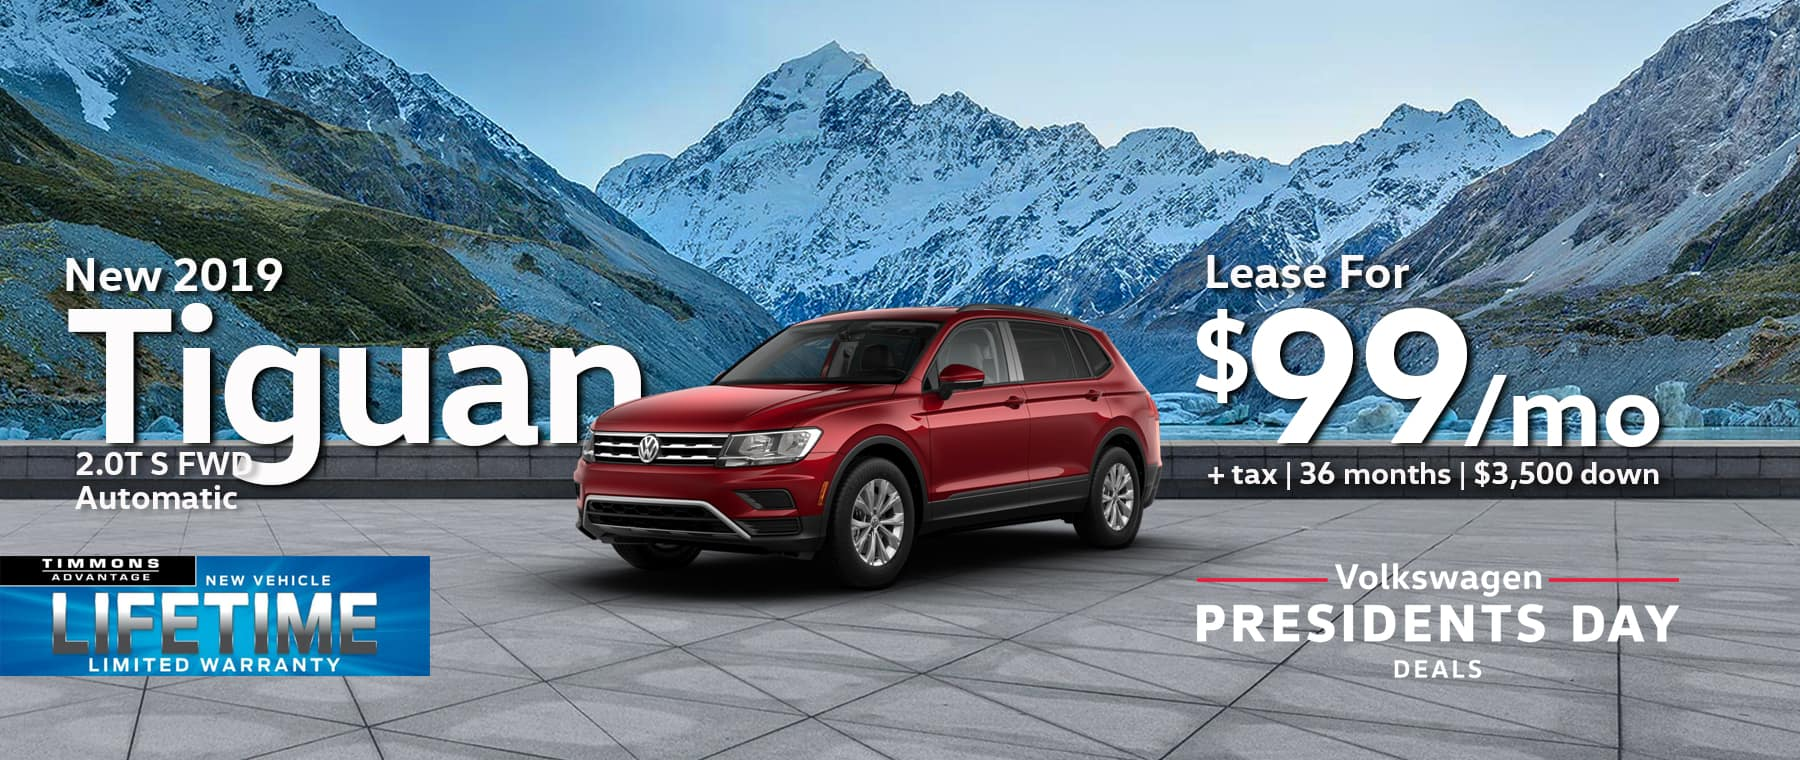 Lease a new 2019 Tiguan S